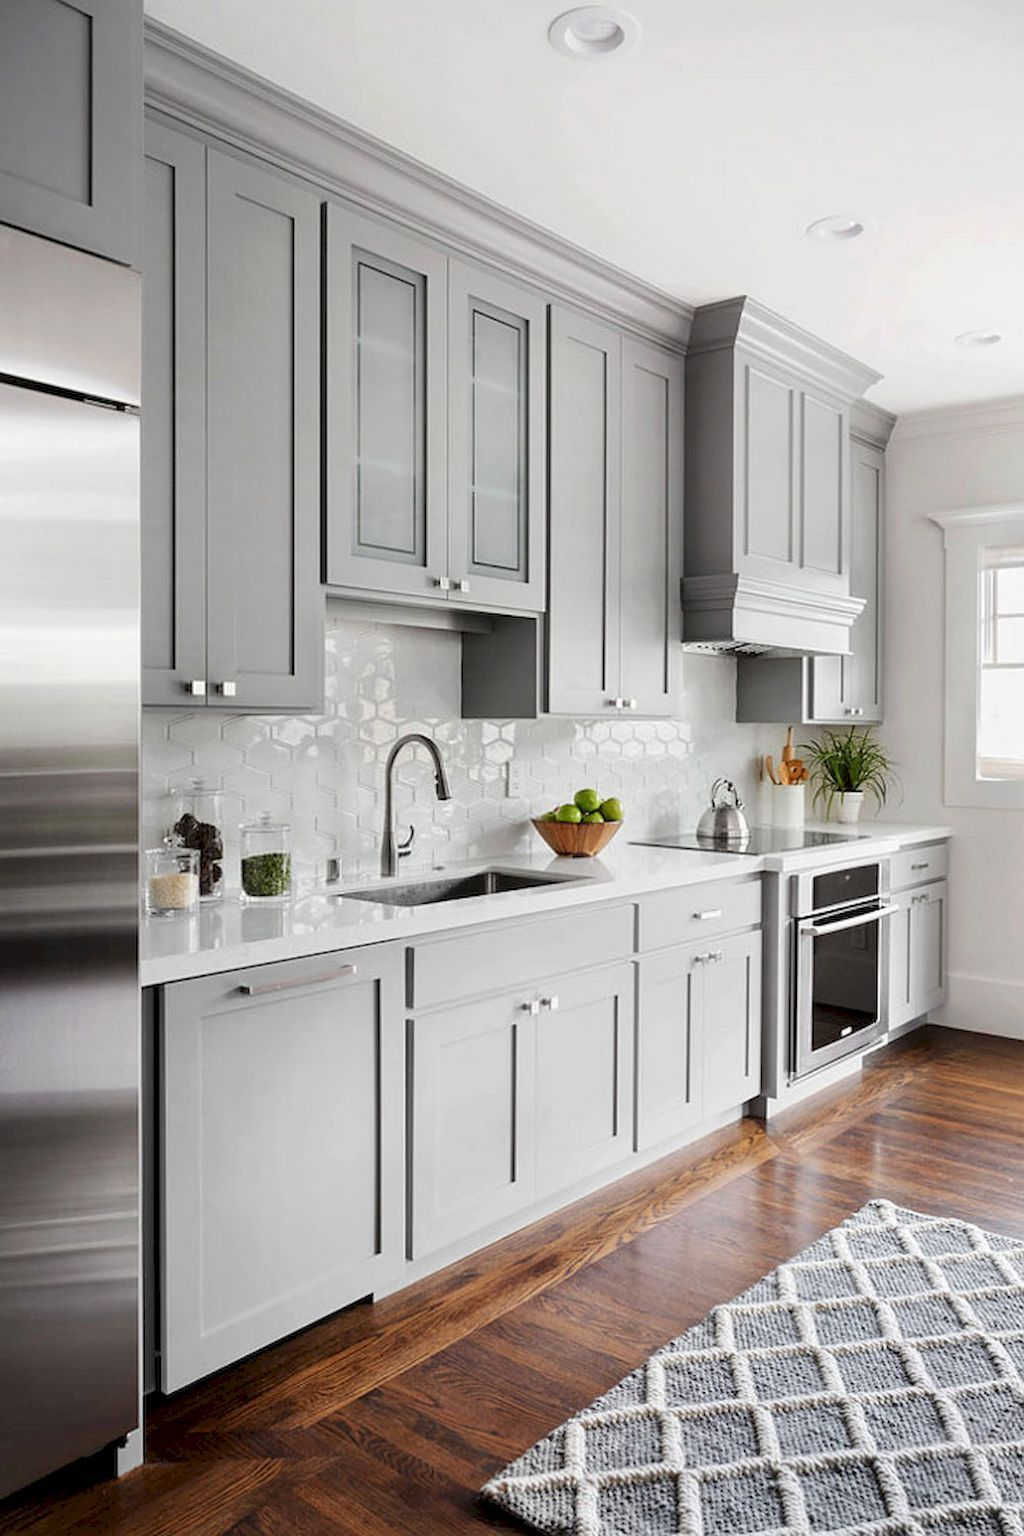 Shaker style kitchen cabinet painted in Benjamin